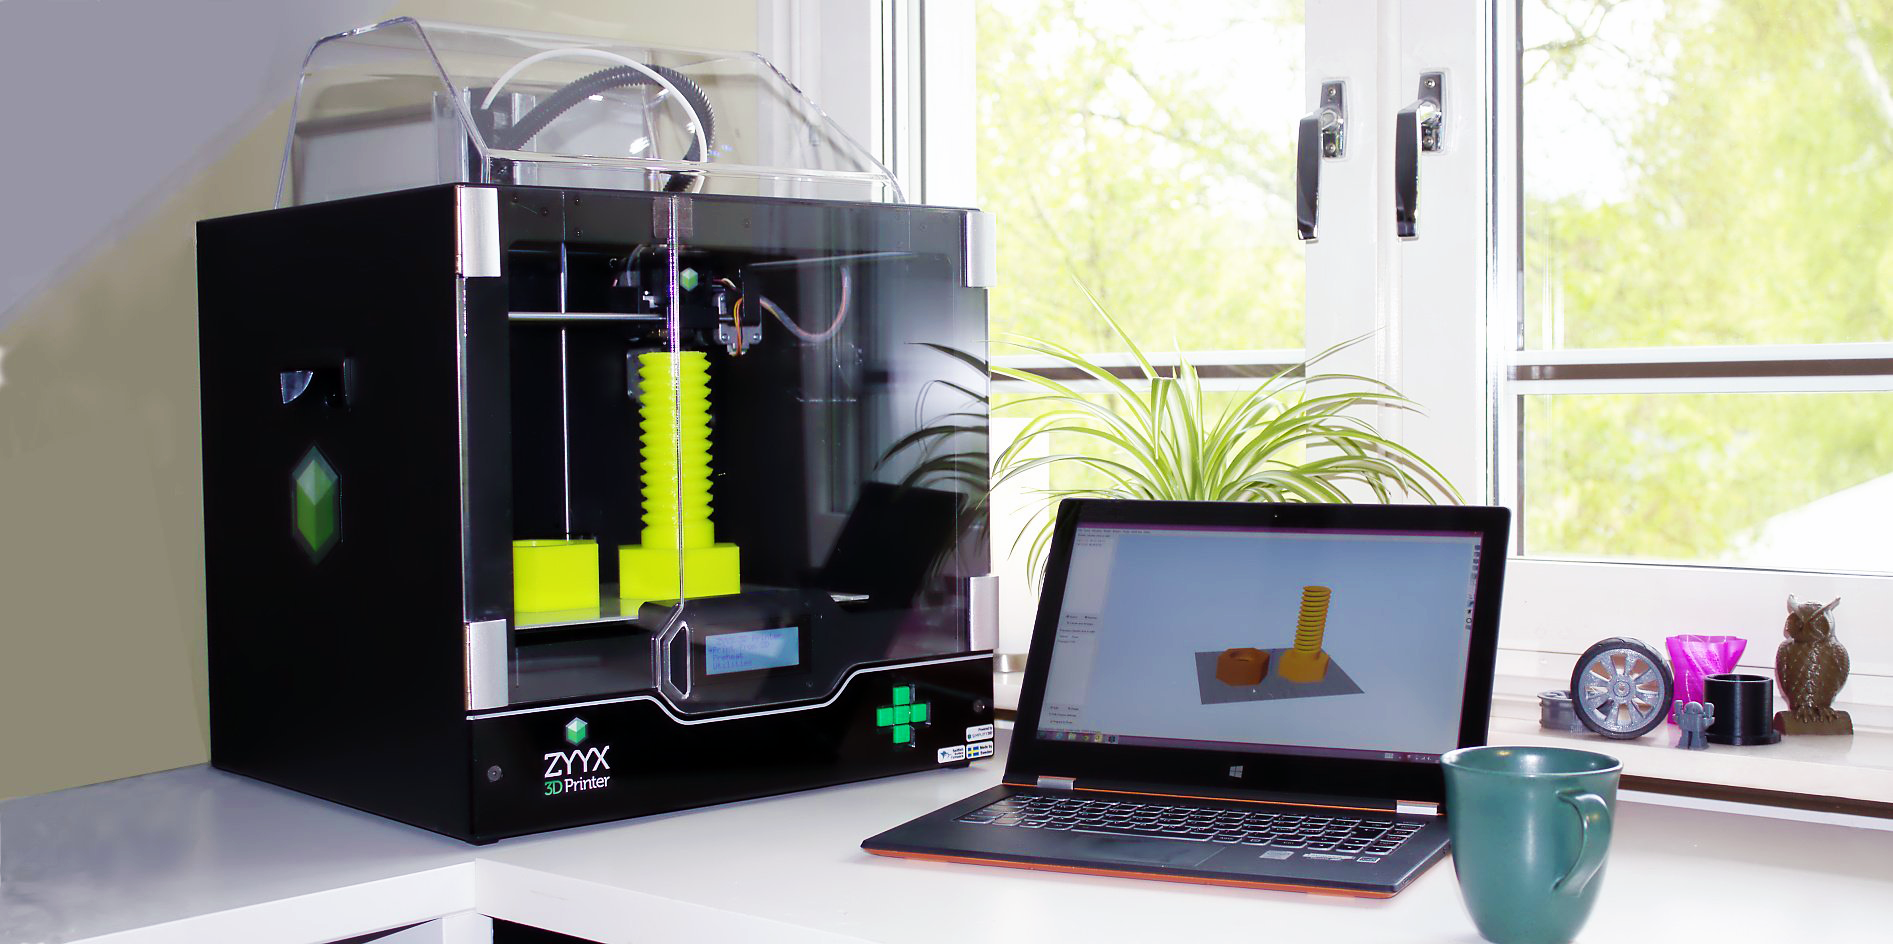 D Printing Exhibition Nec : Zyyx d printer simplifies printing insider